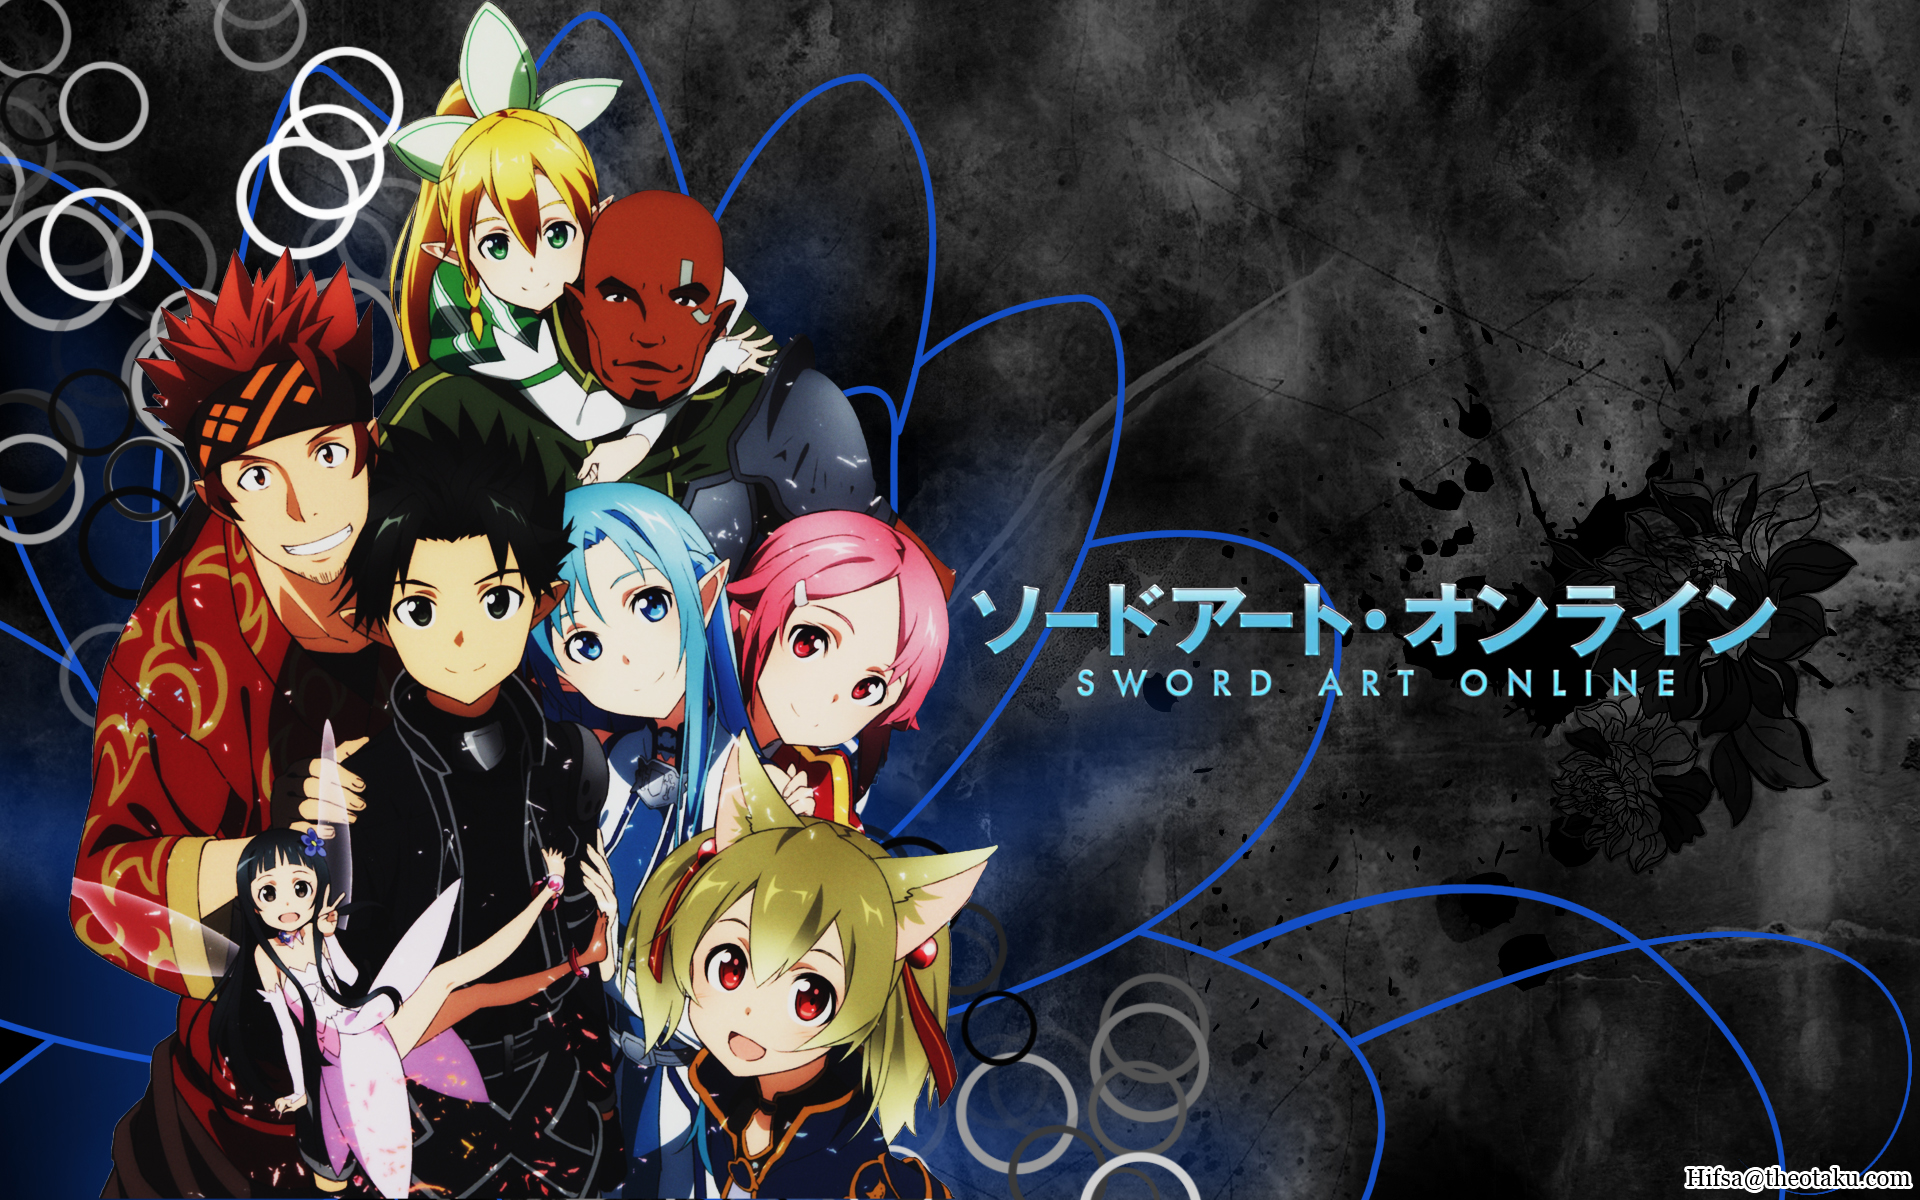 sword art online - wallpaper and scan gallery - minitokyo